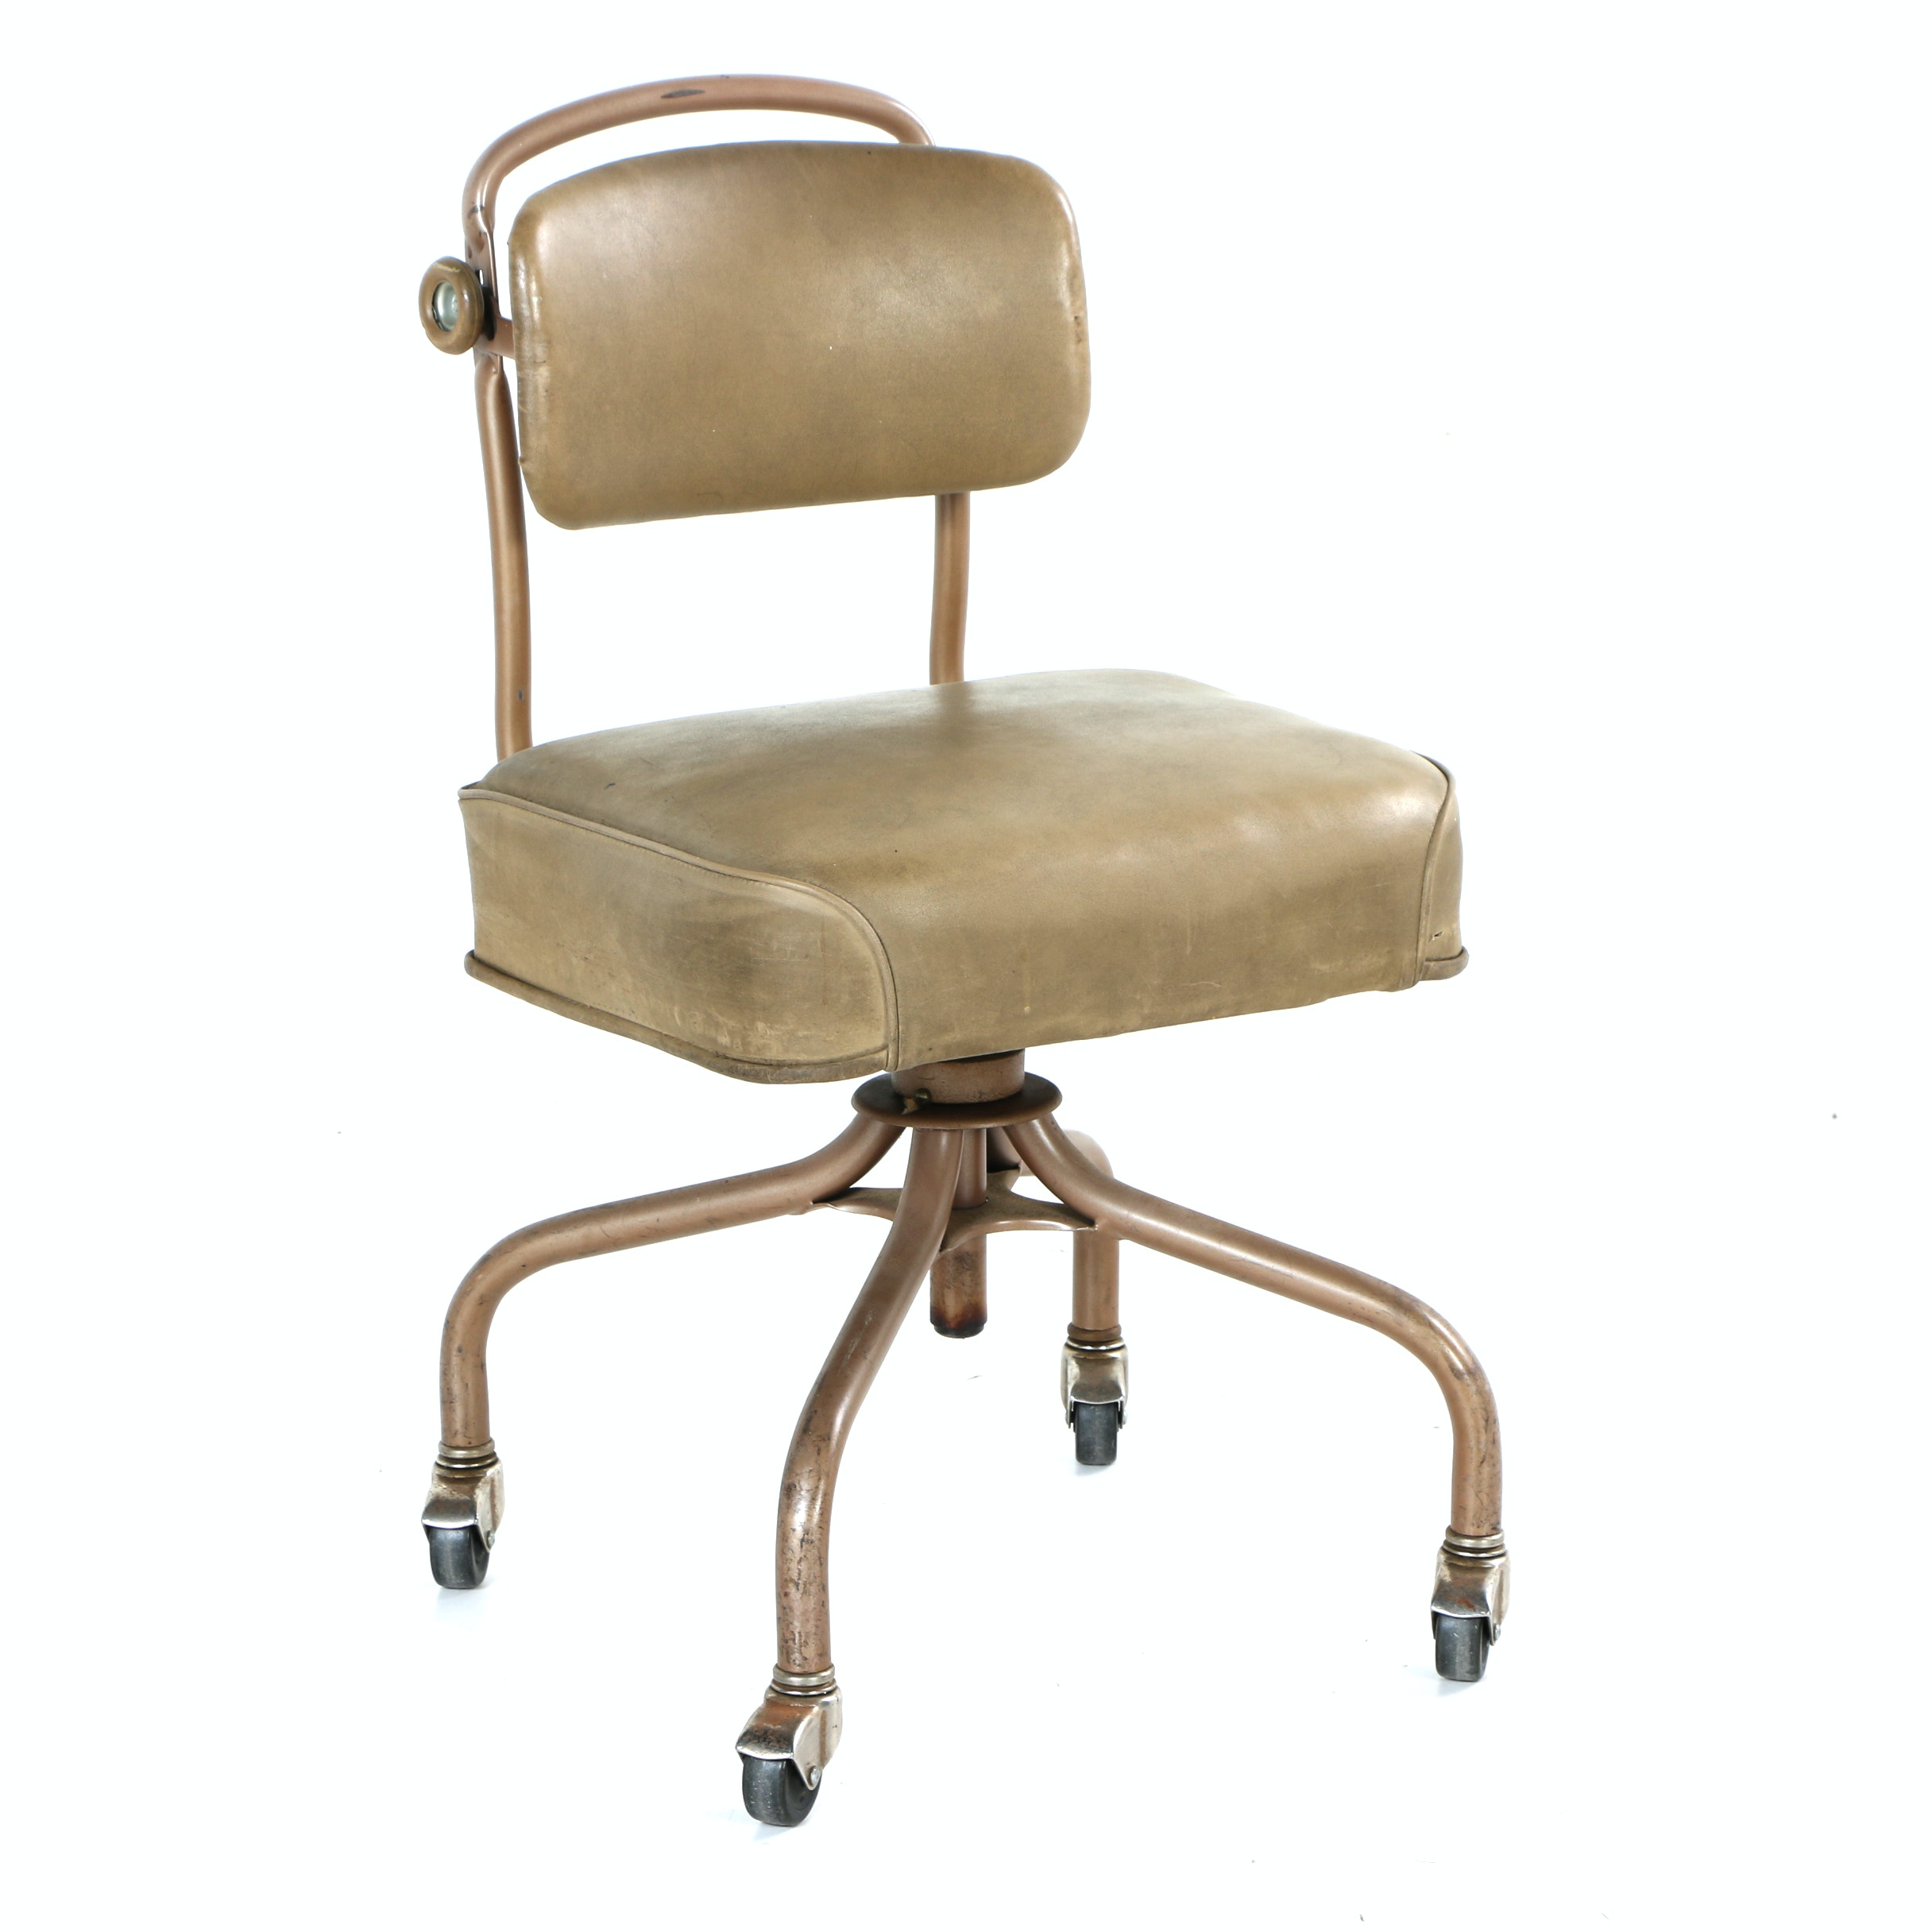 Vintage Mid Century Modern Rolling Office Chair by Steelcase